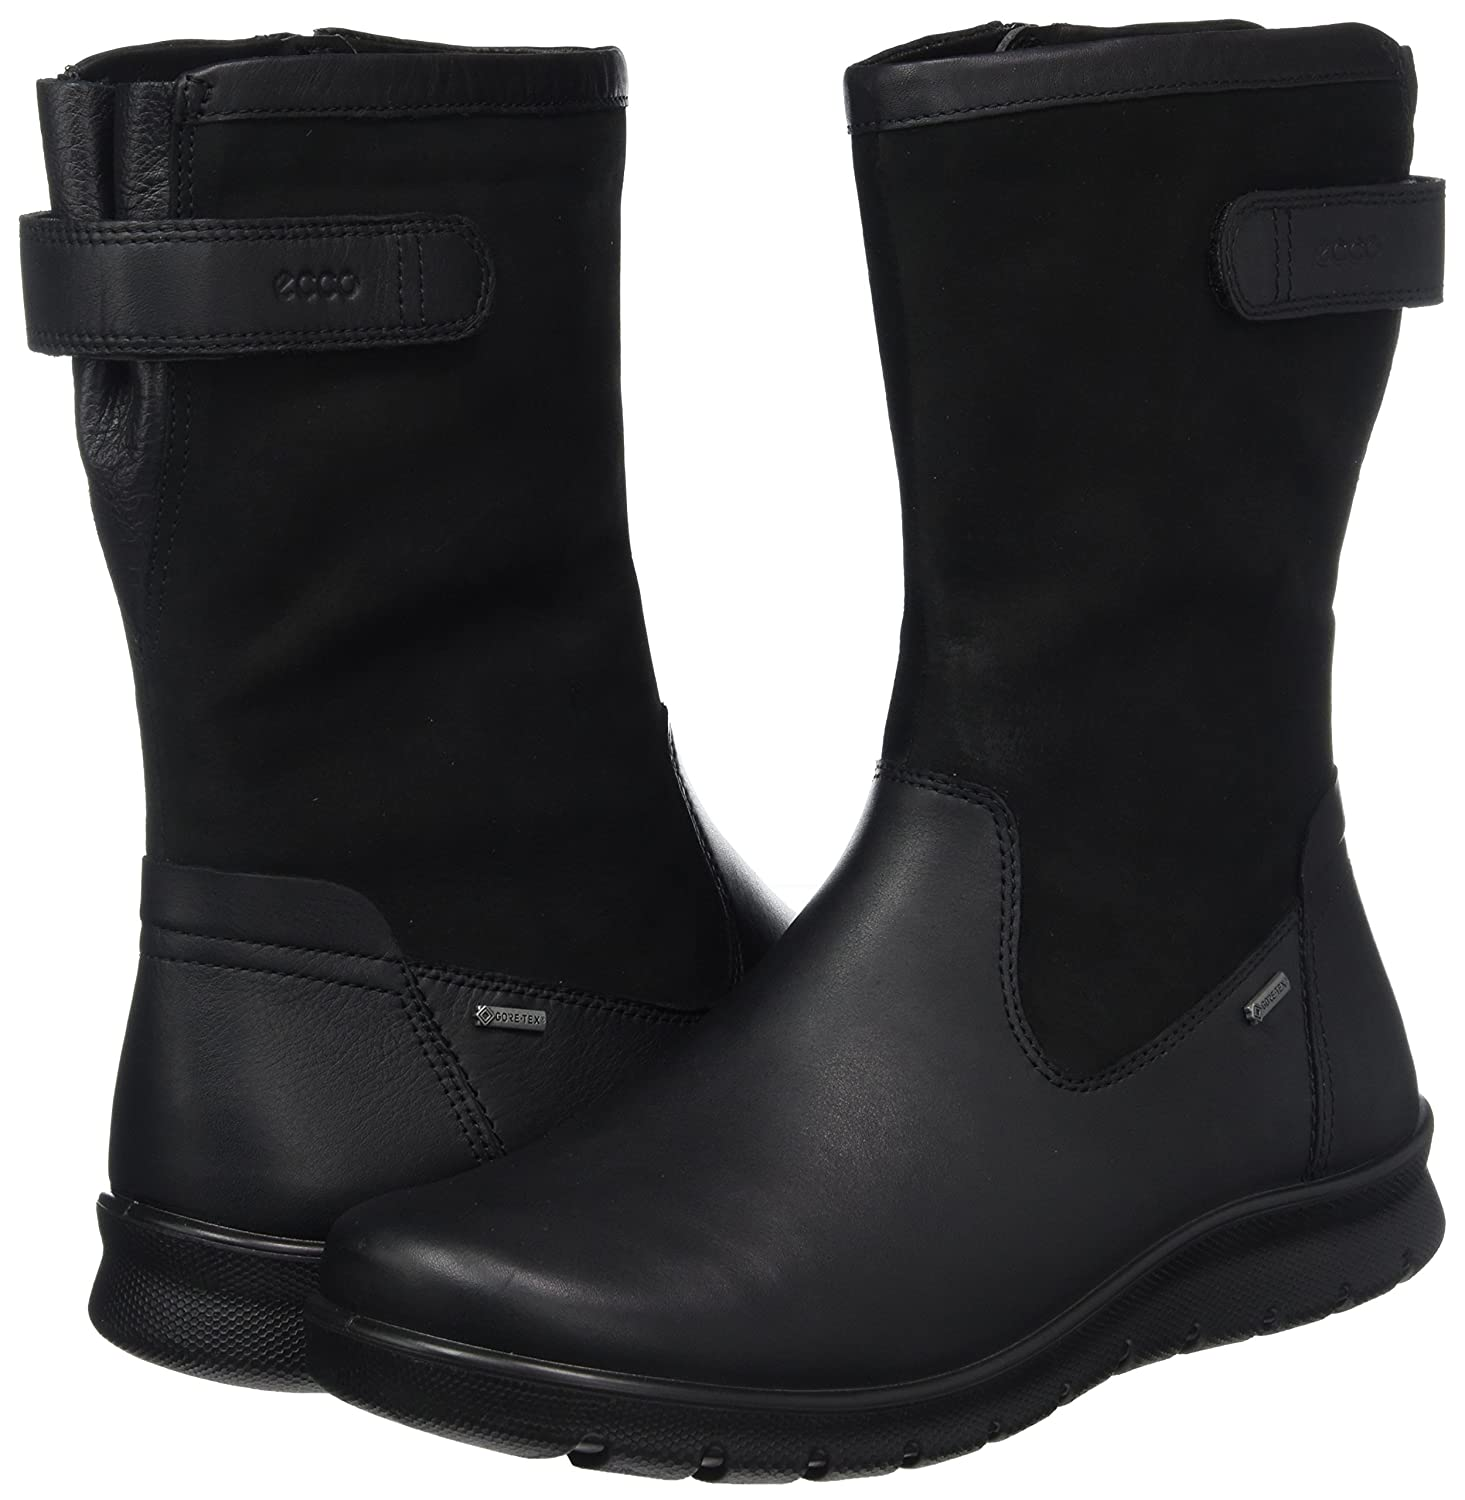 ECCO Women's Women's Babett Gore-Tex EU Winter Boot B01MRA1DVM 41 EU Gore-Tex / 10-10.5 US|Black 3e55e0